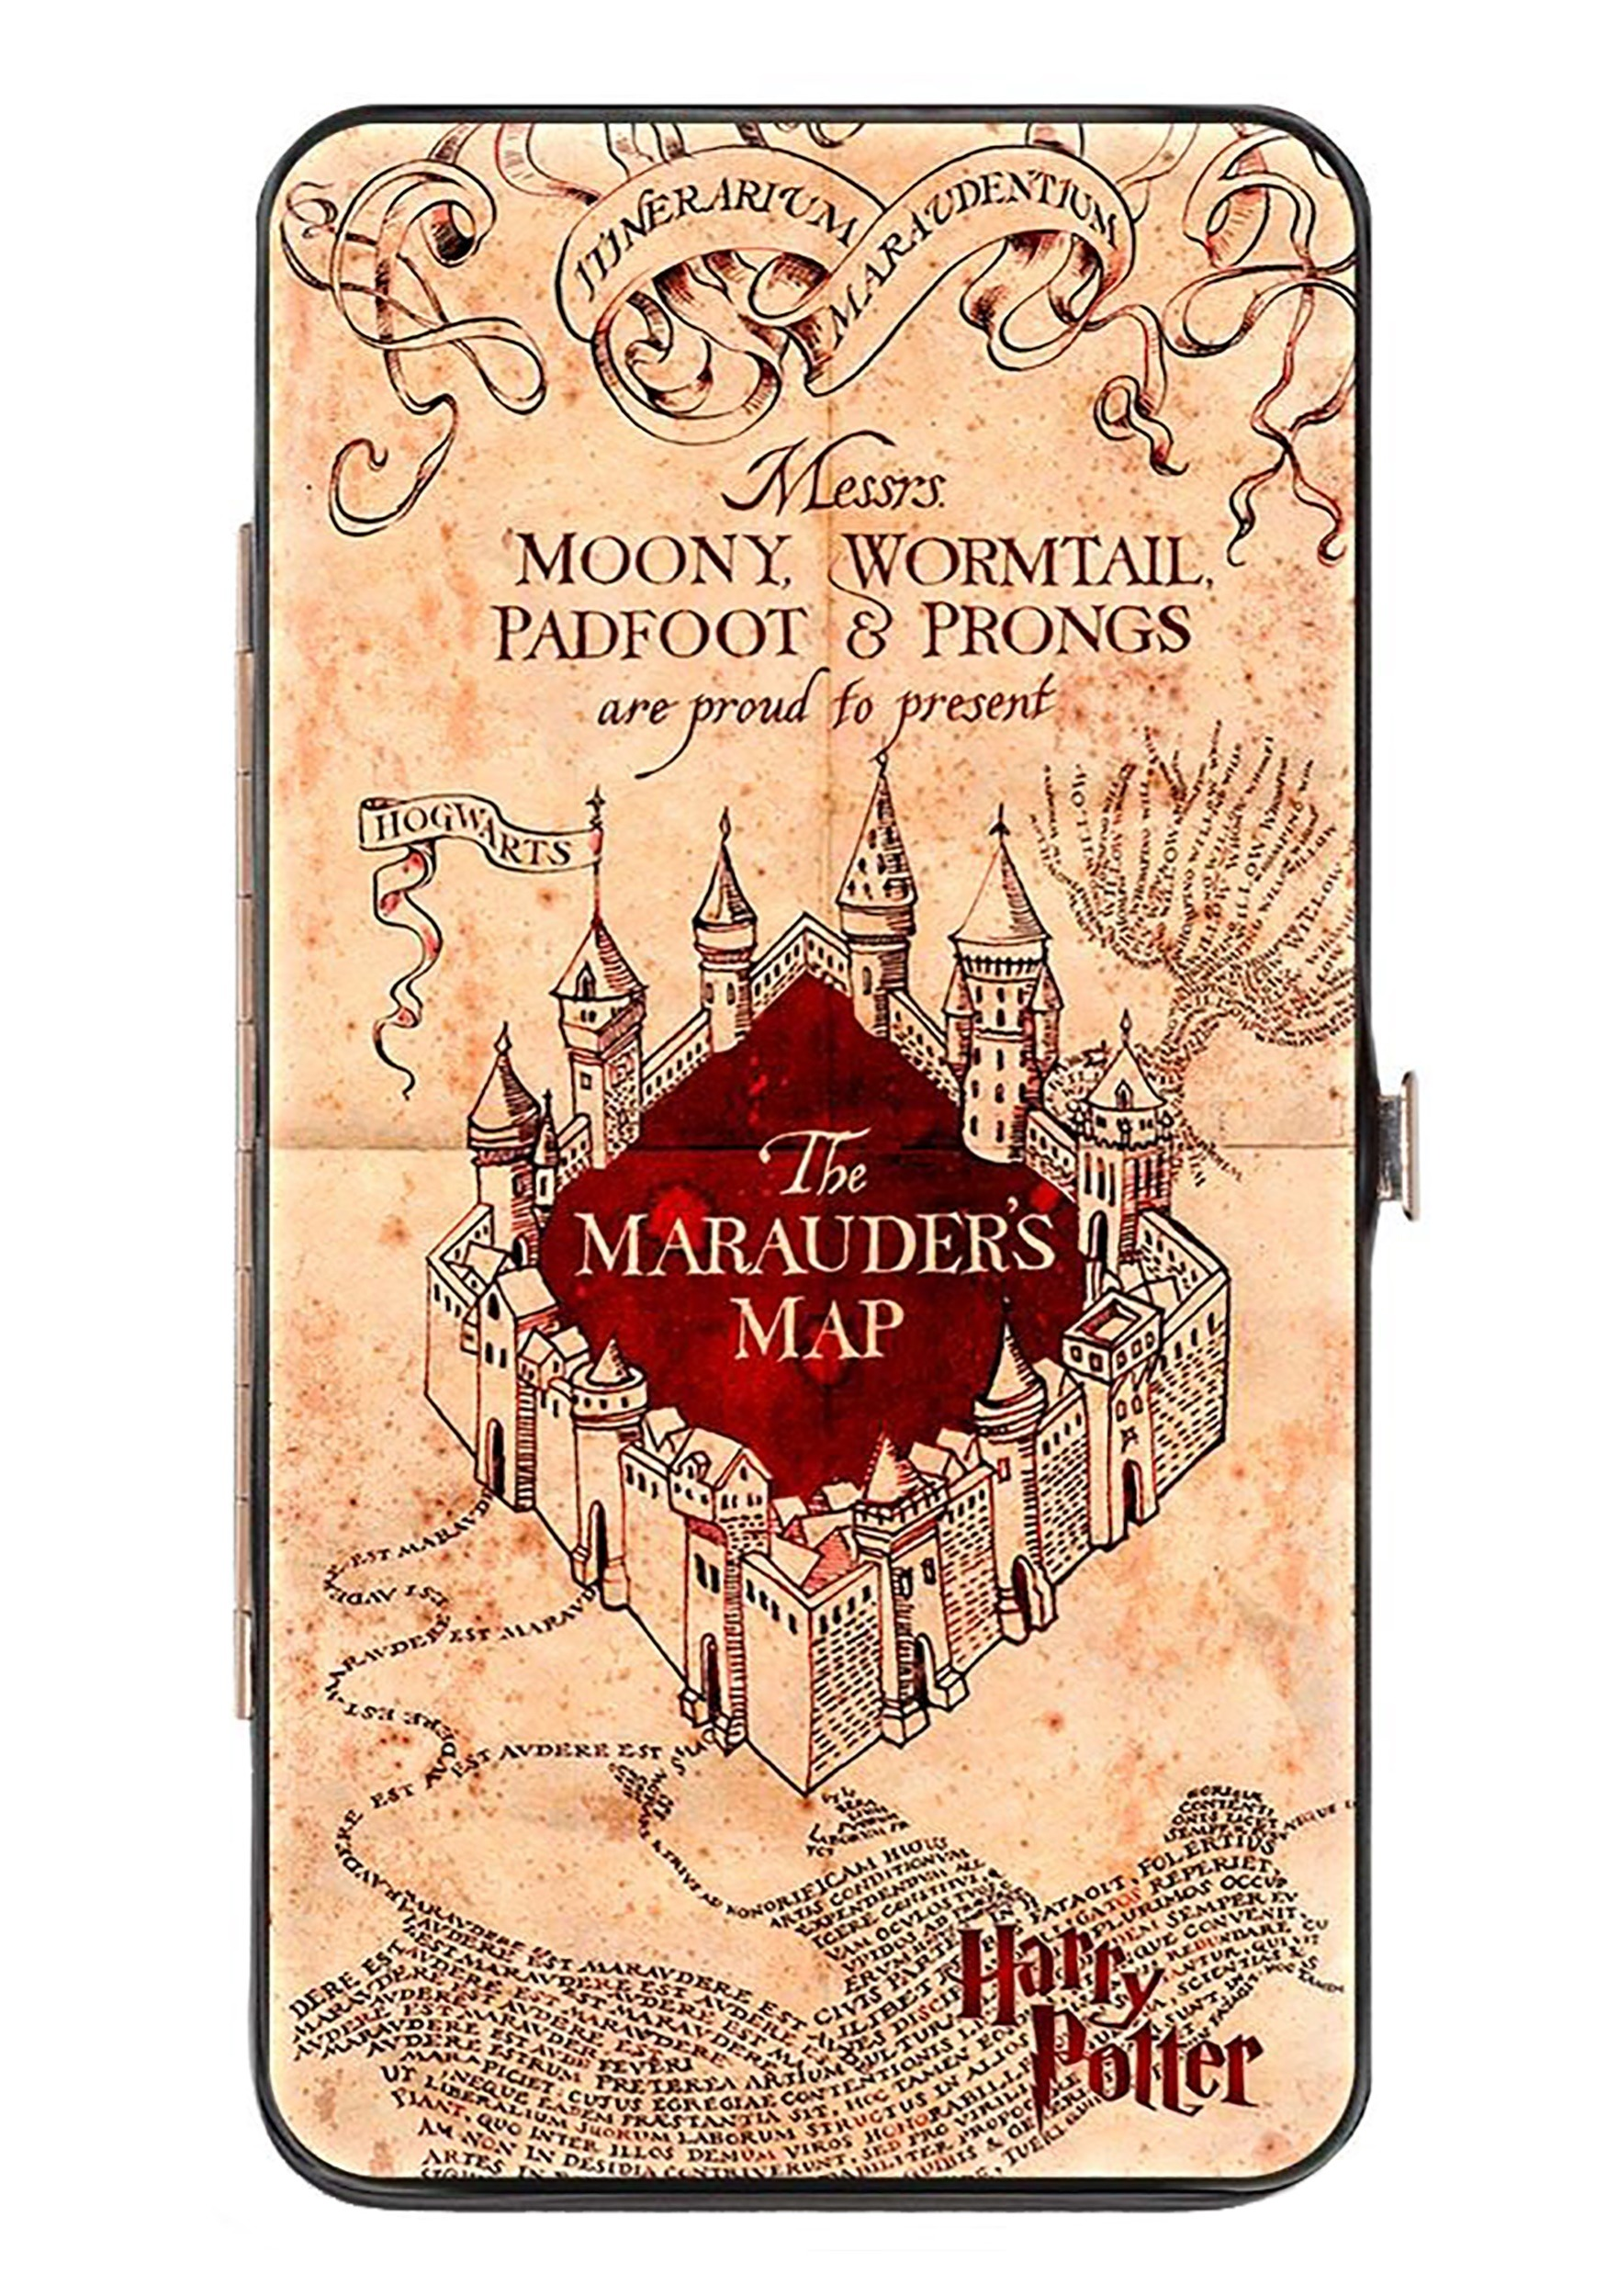 Harry Potter Marauder's Map Hinged Wallet on secret s map harry potter, map in game of thrones, map harry potter books, fictional map harry potter,